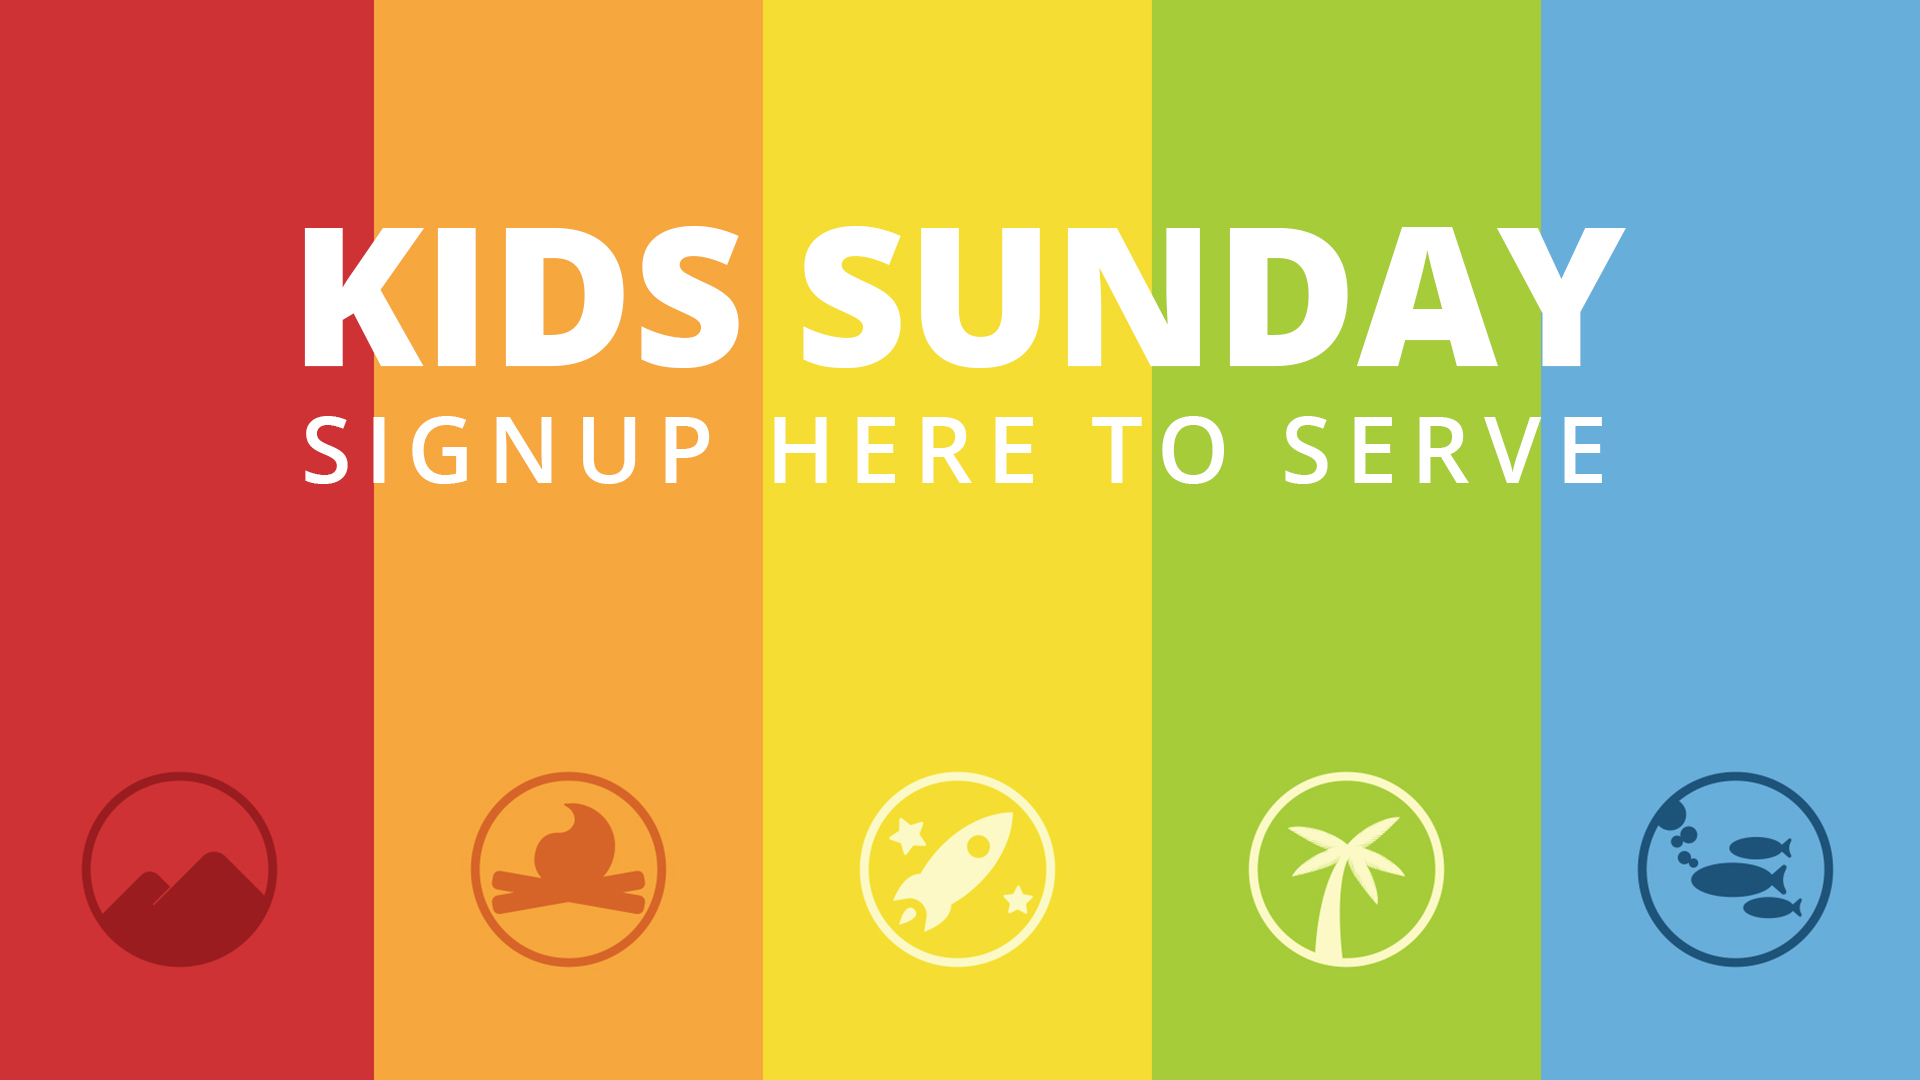 Kidssunday signup wide